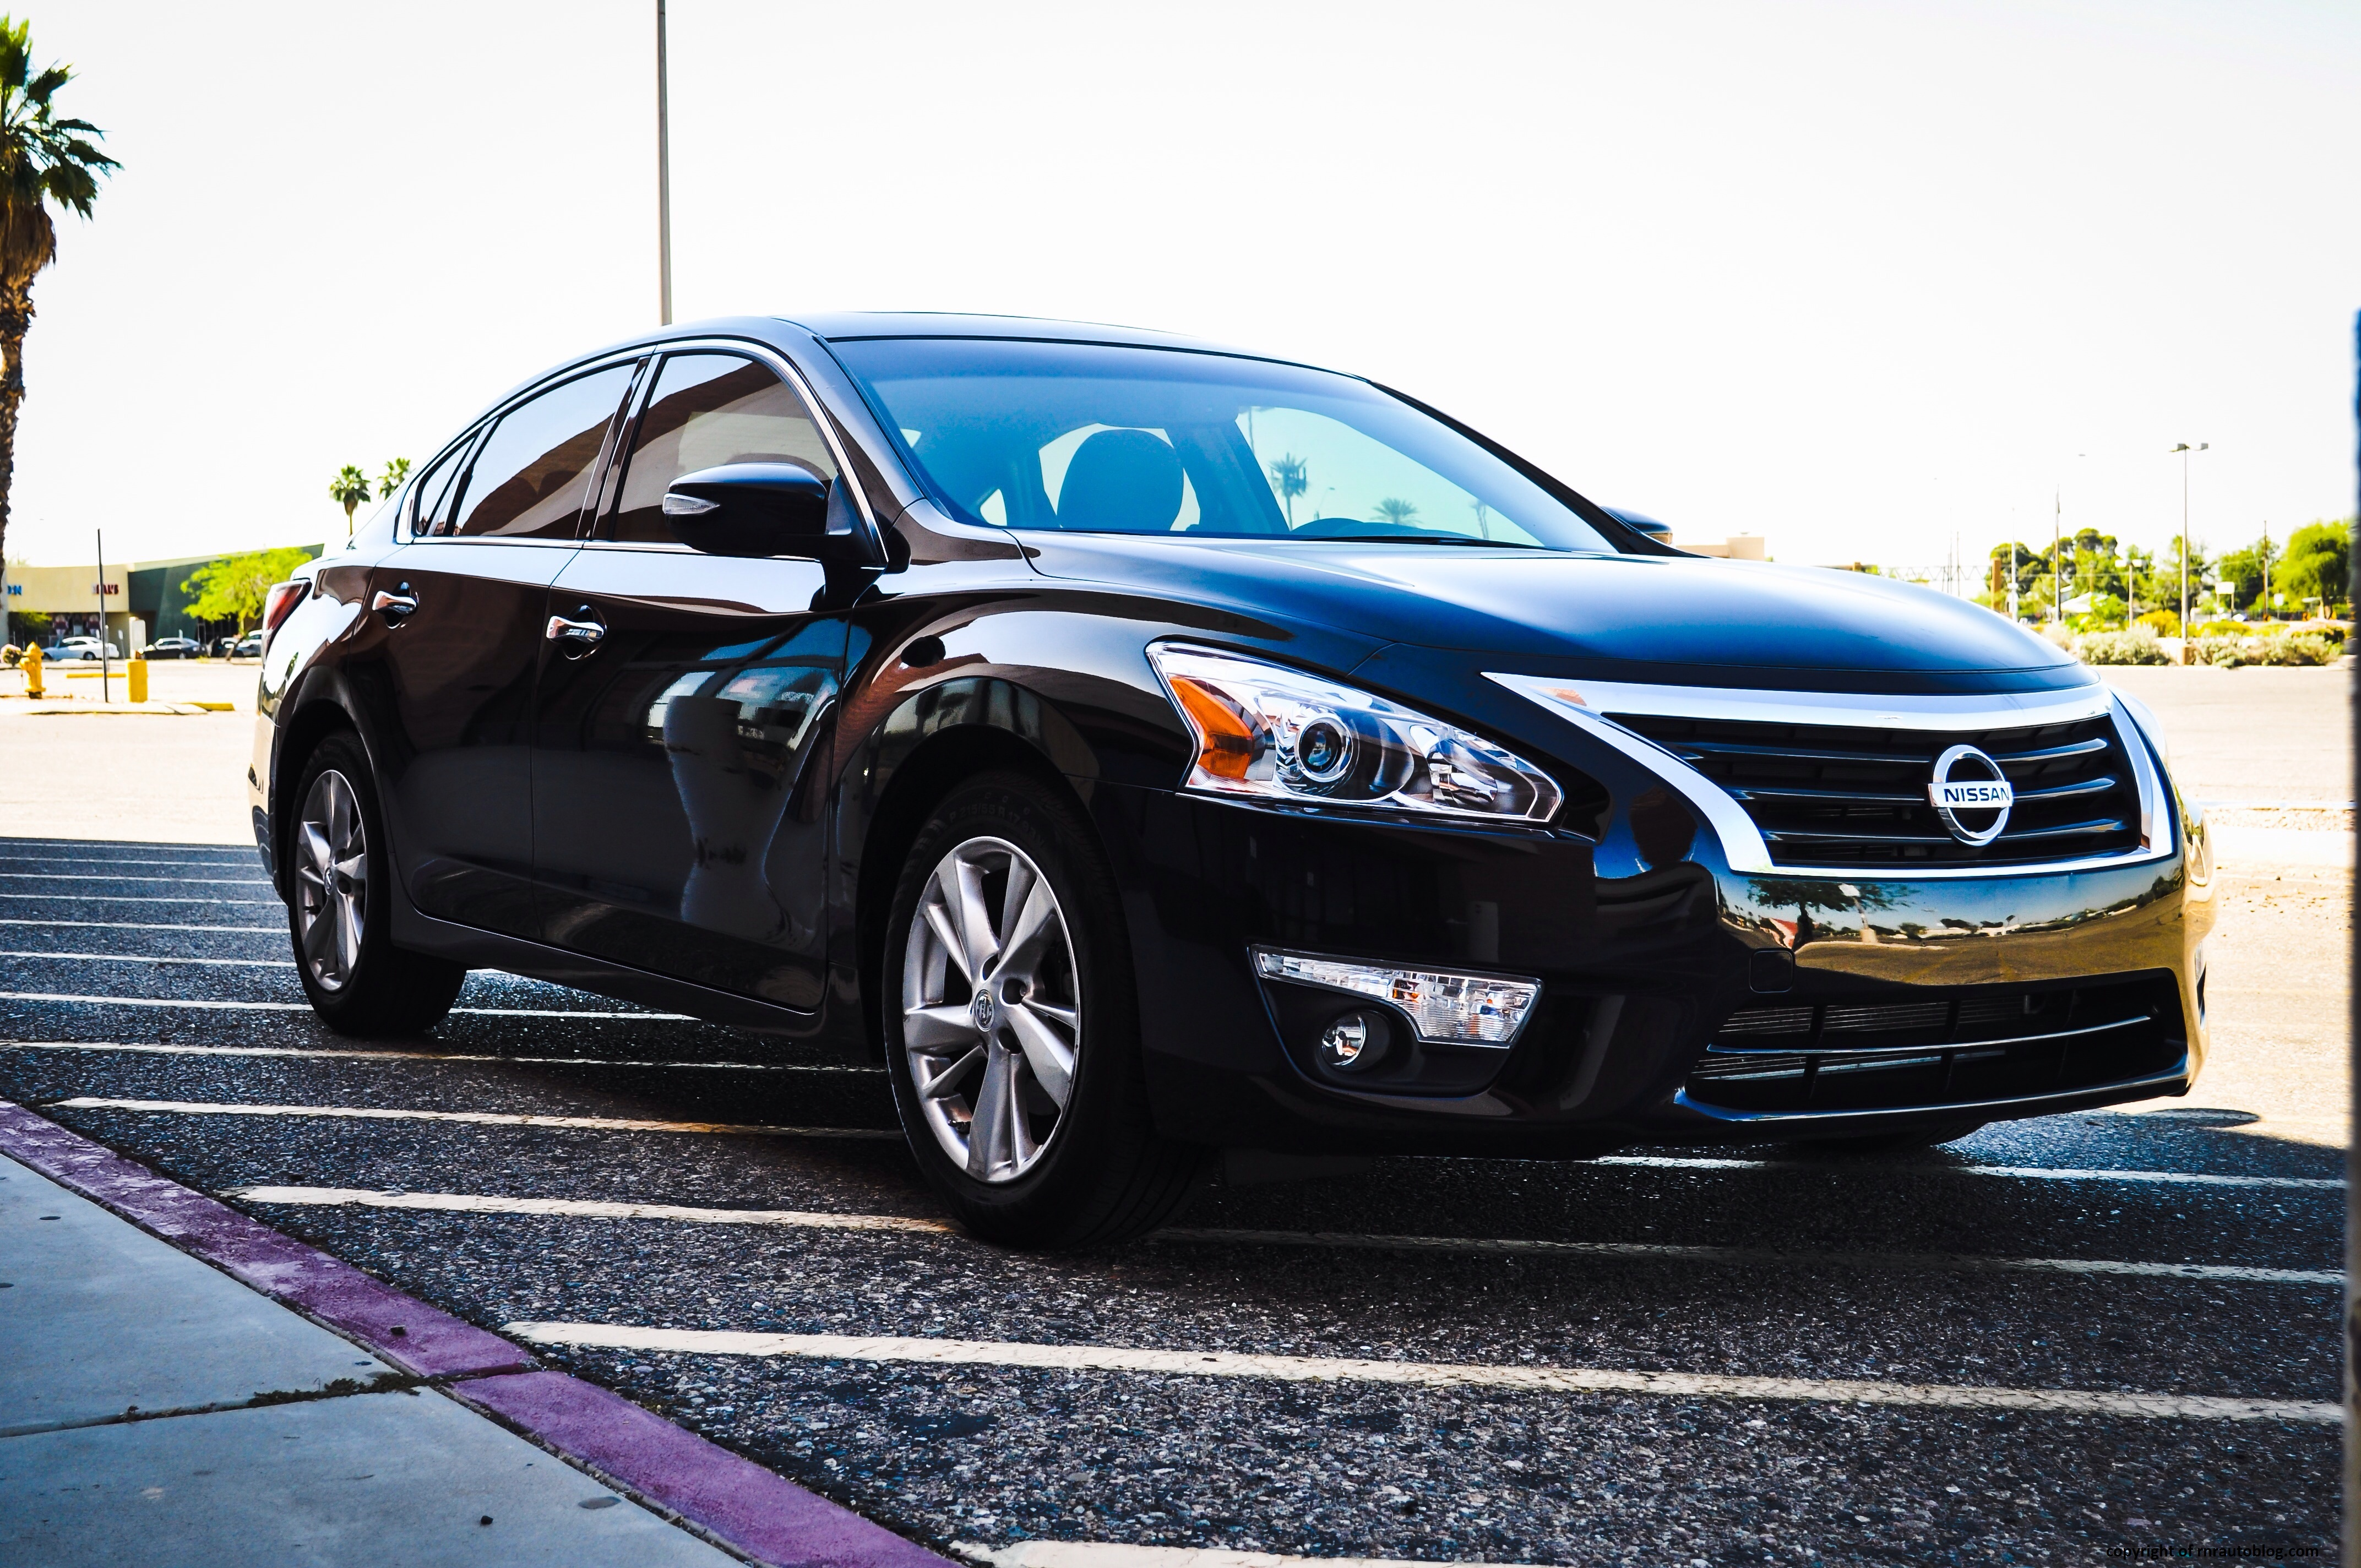 bhp img test ownership nissan altima initial team my reports forum review s drives